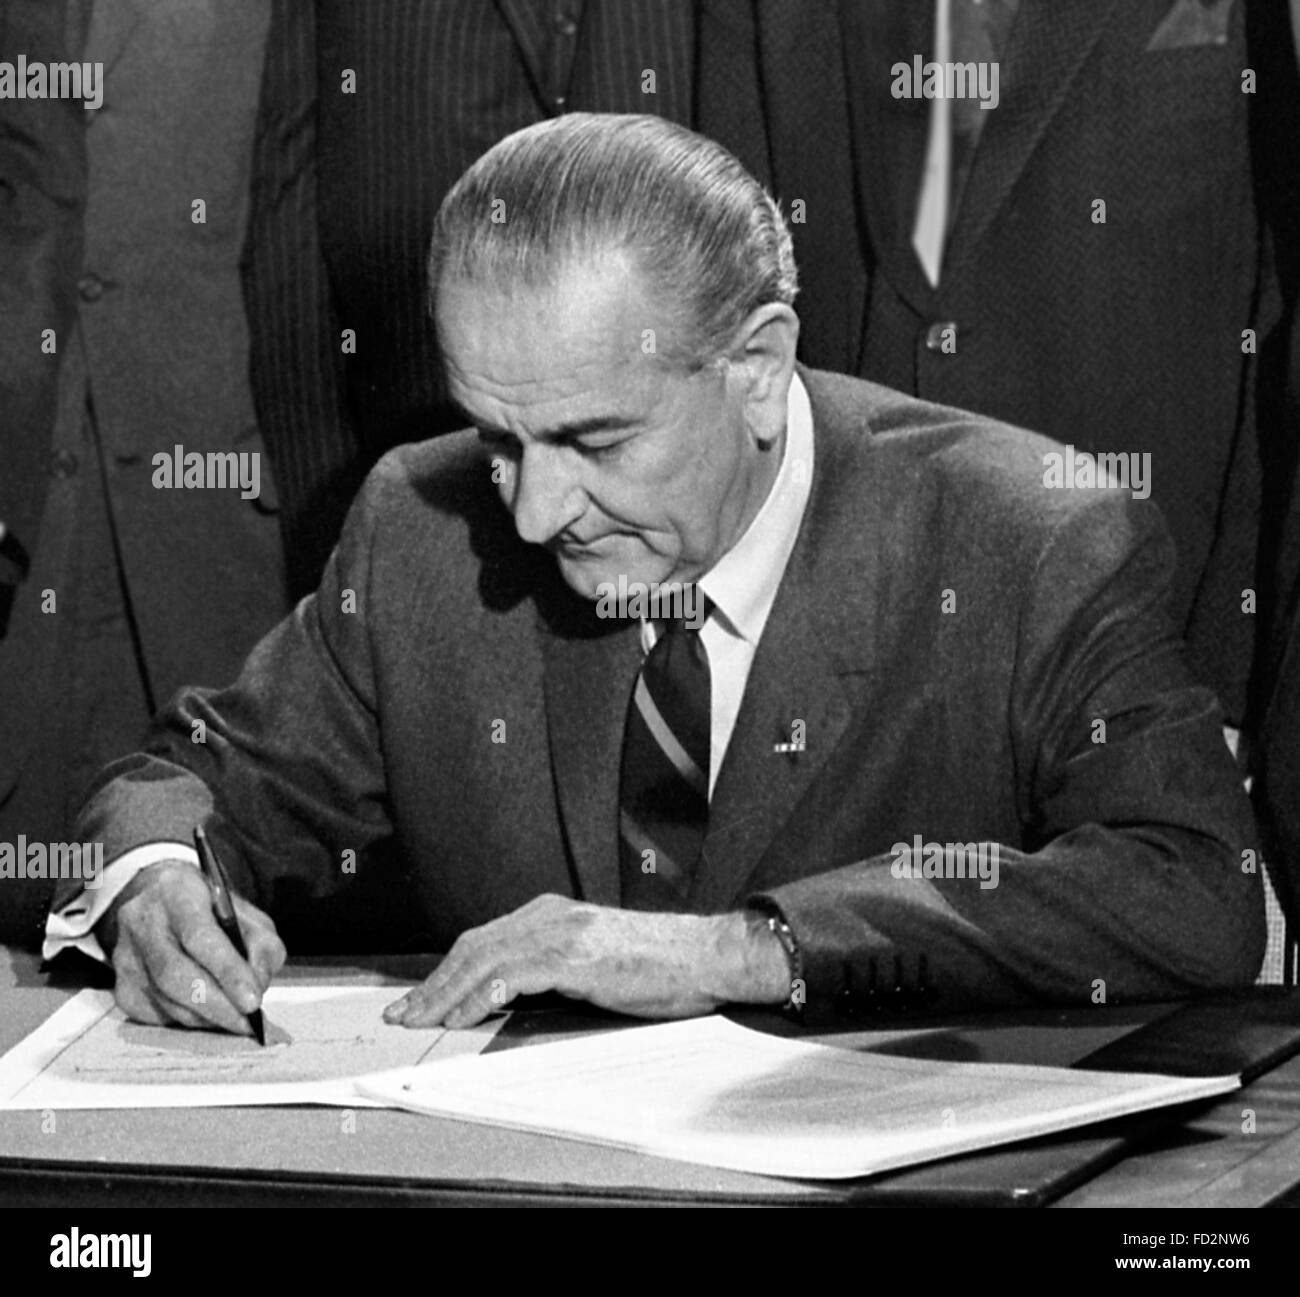 Lyndon B Johnson, the 36th President of the USA, signing the 1968 Civil Rights Act, 11th April 1968. Photo by Warren - Stock Image